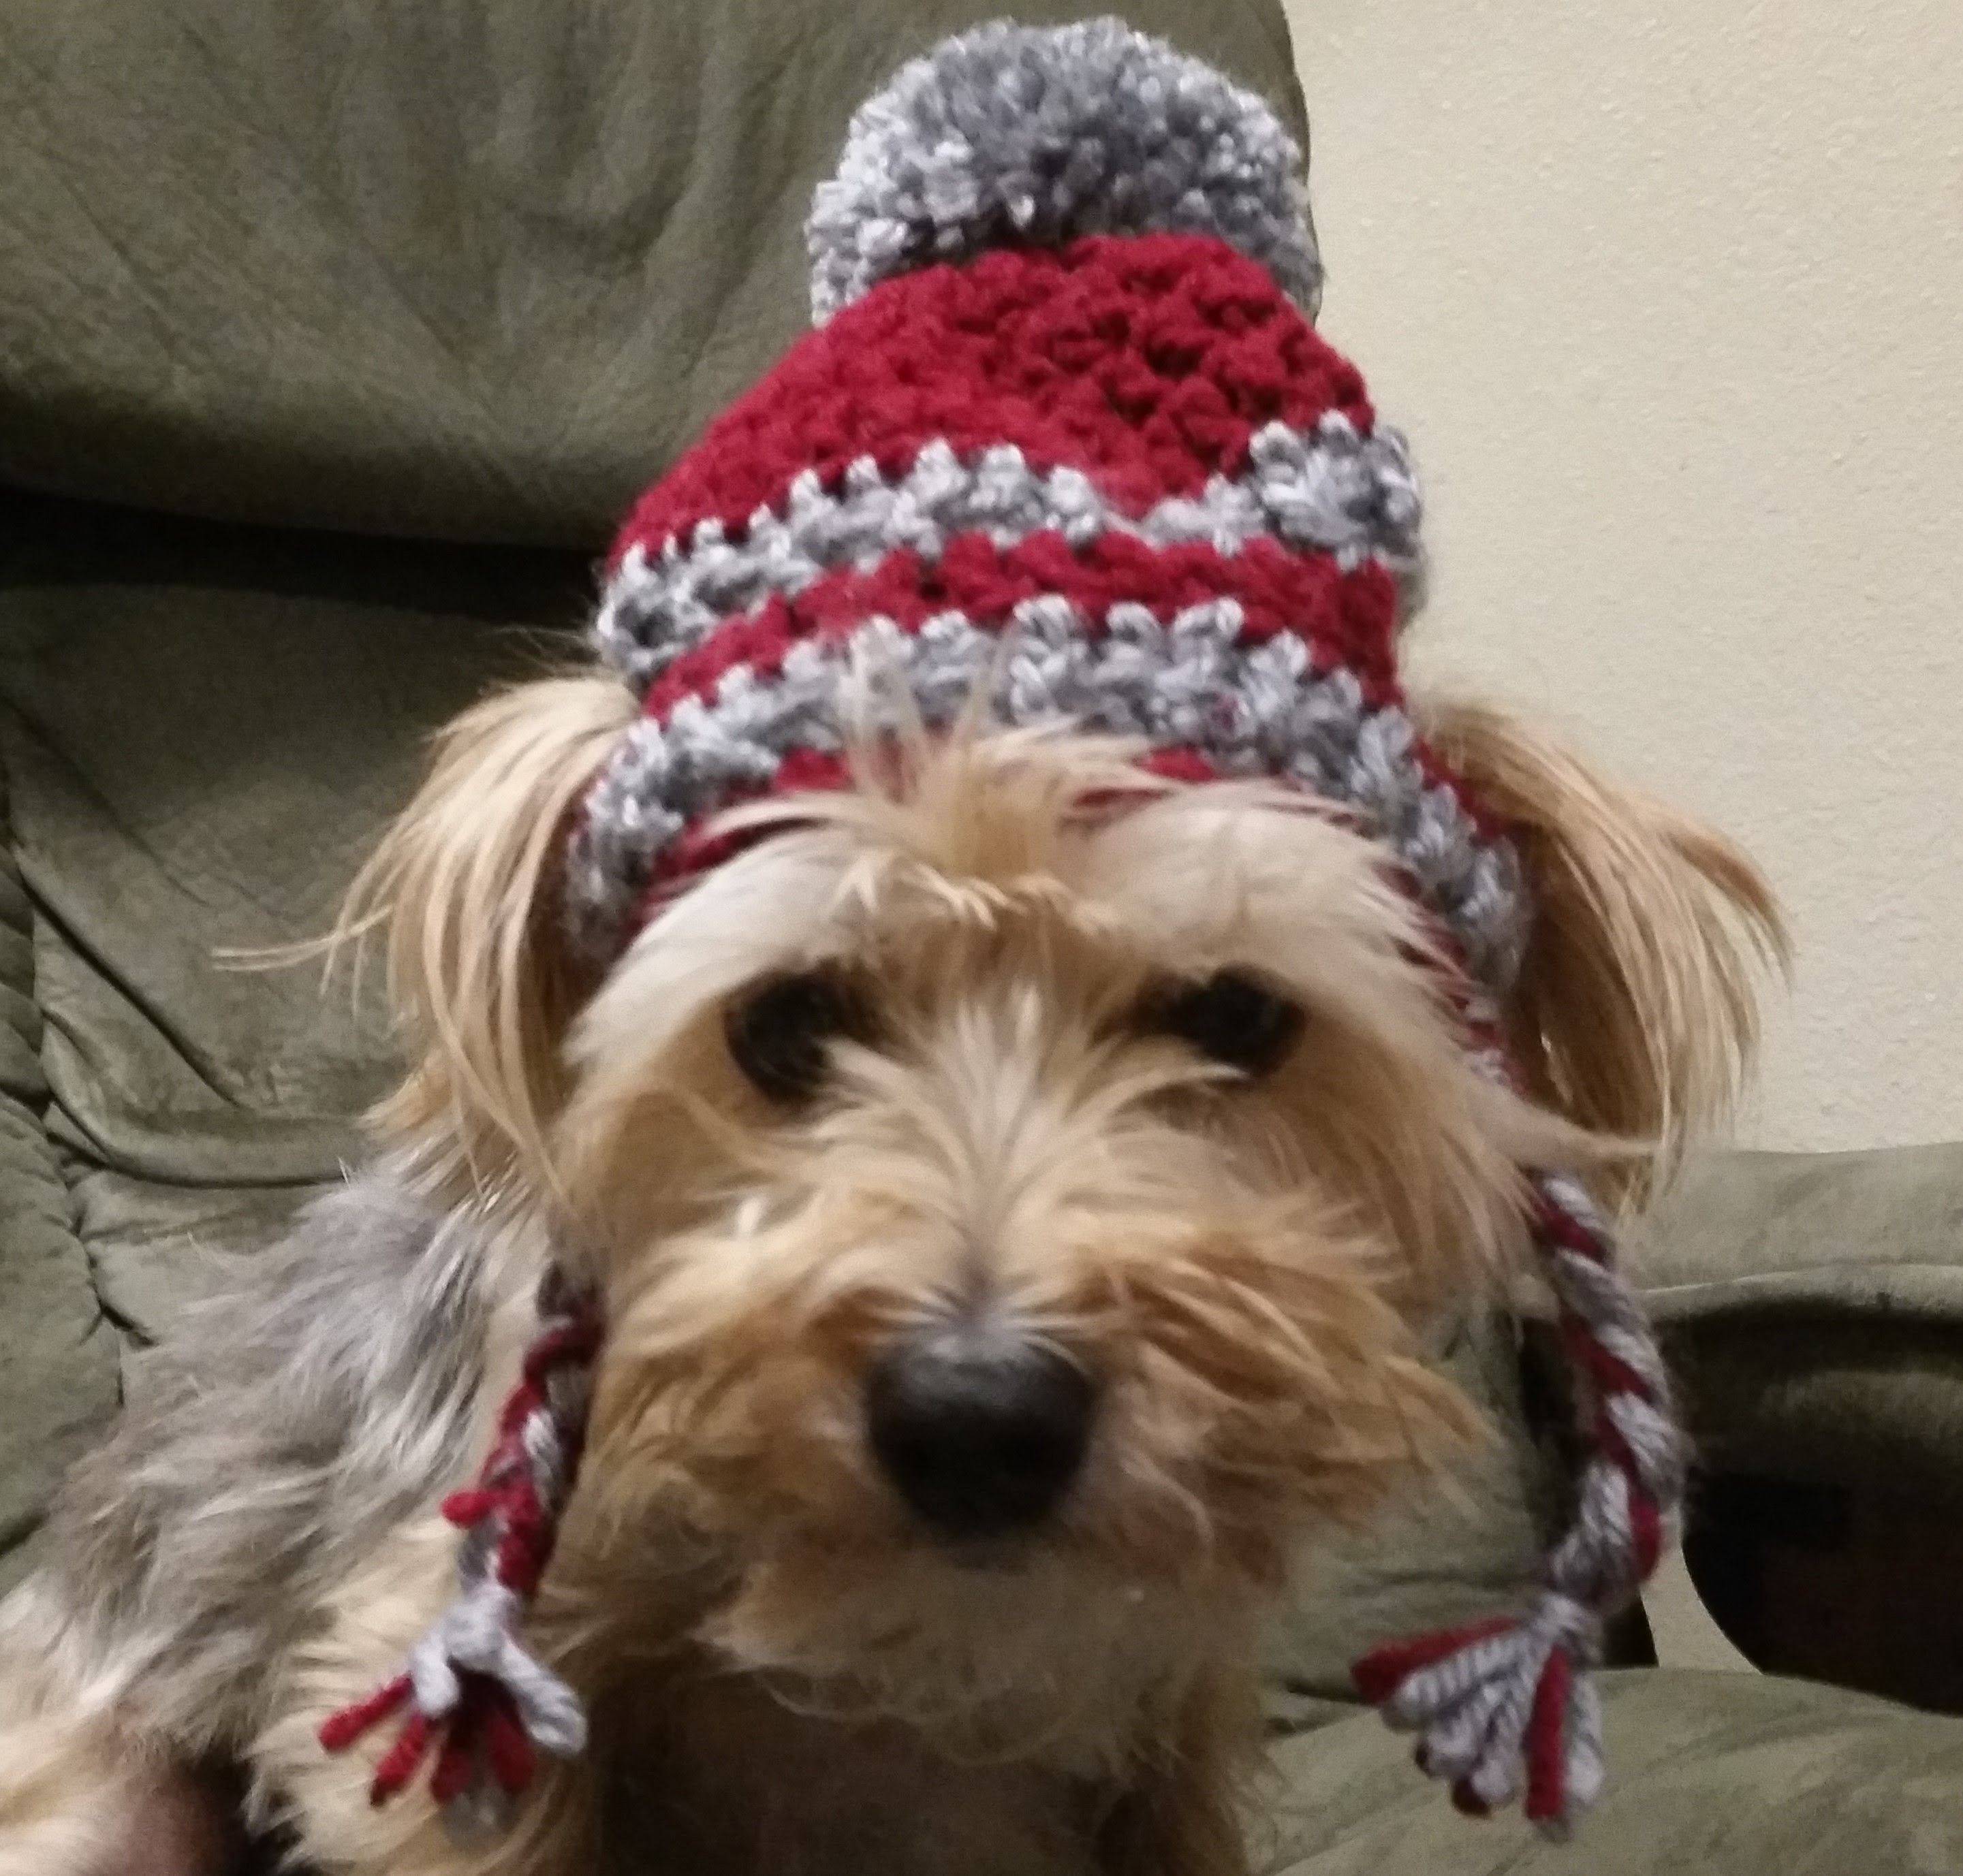 Crochet Hat for Dogs Tutorial | Crochet, Tutorials and Dog